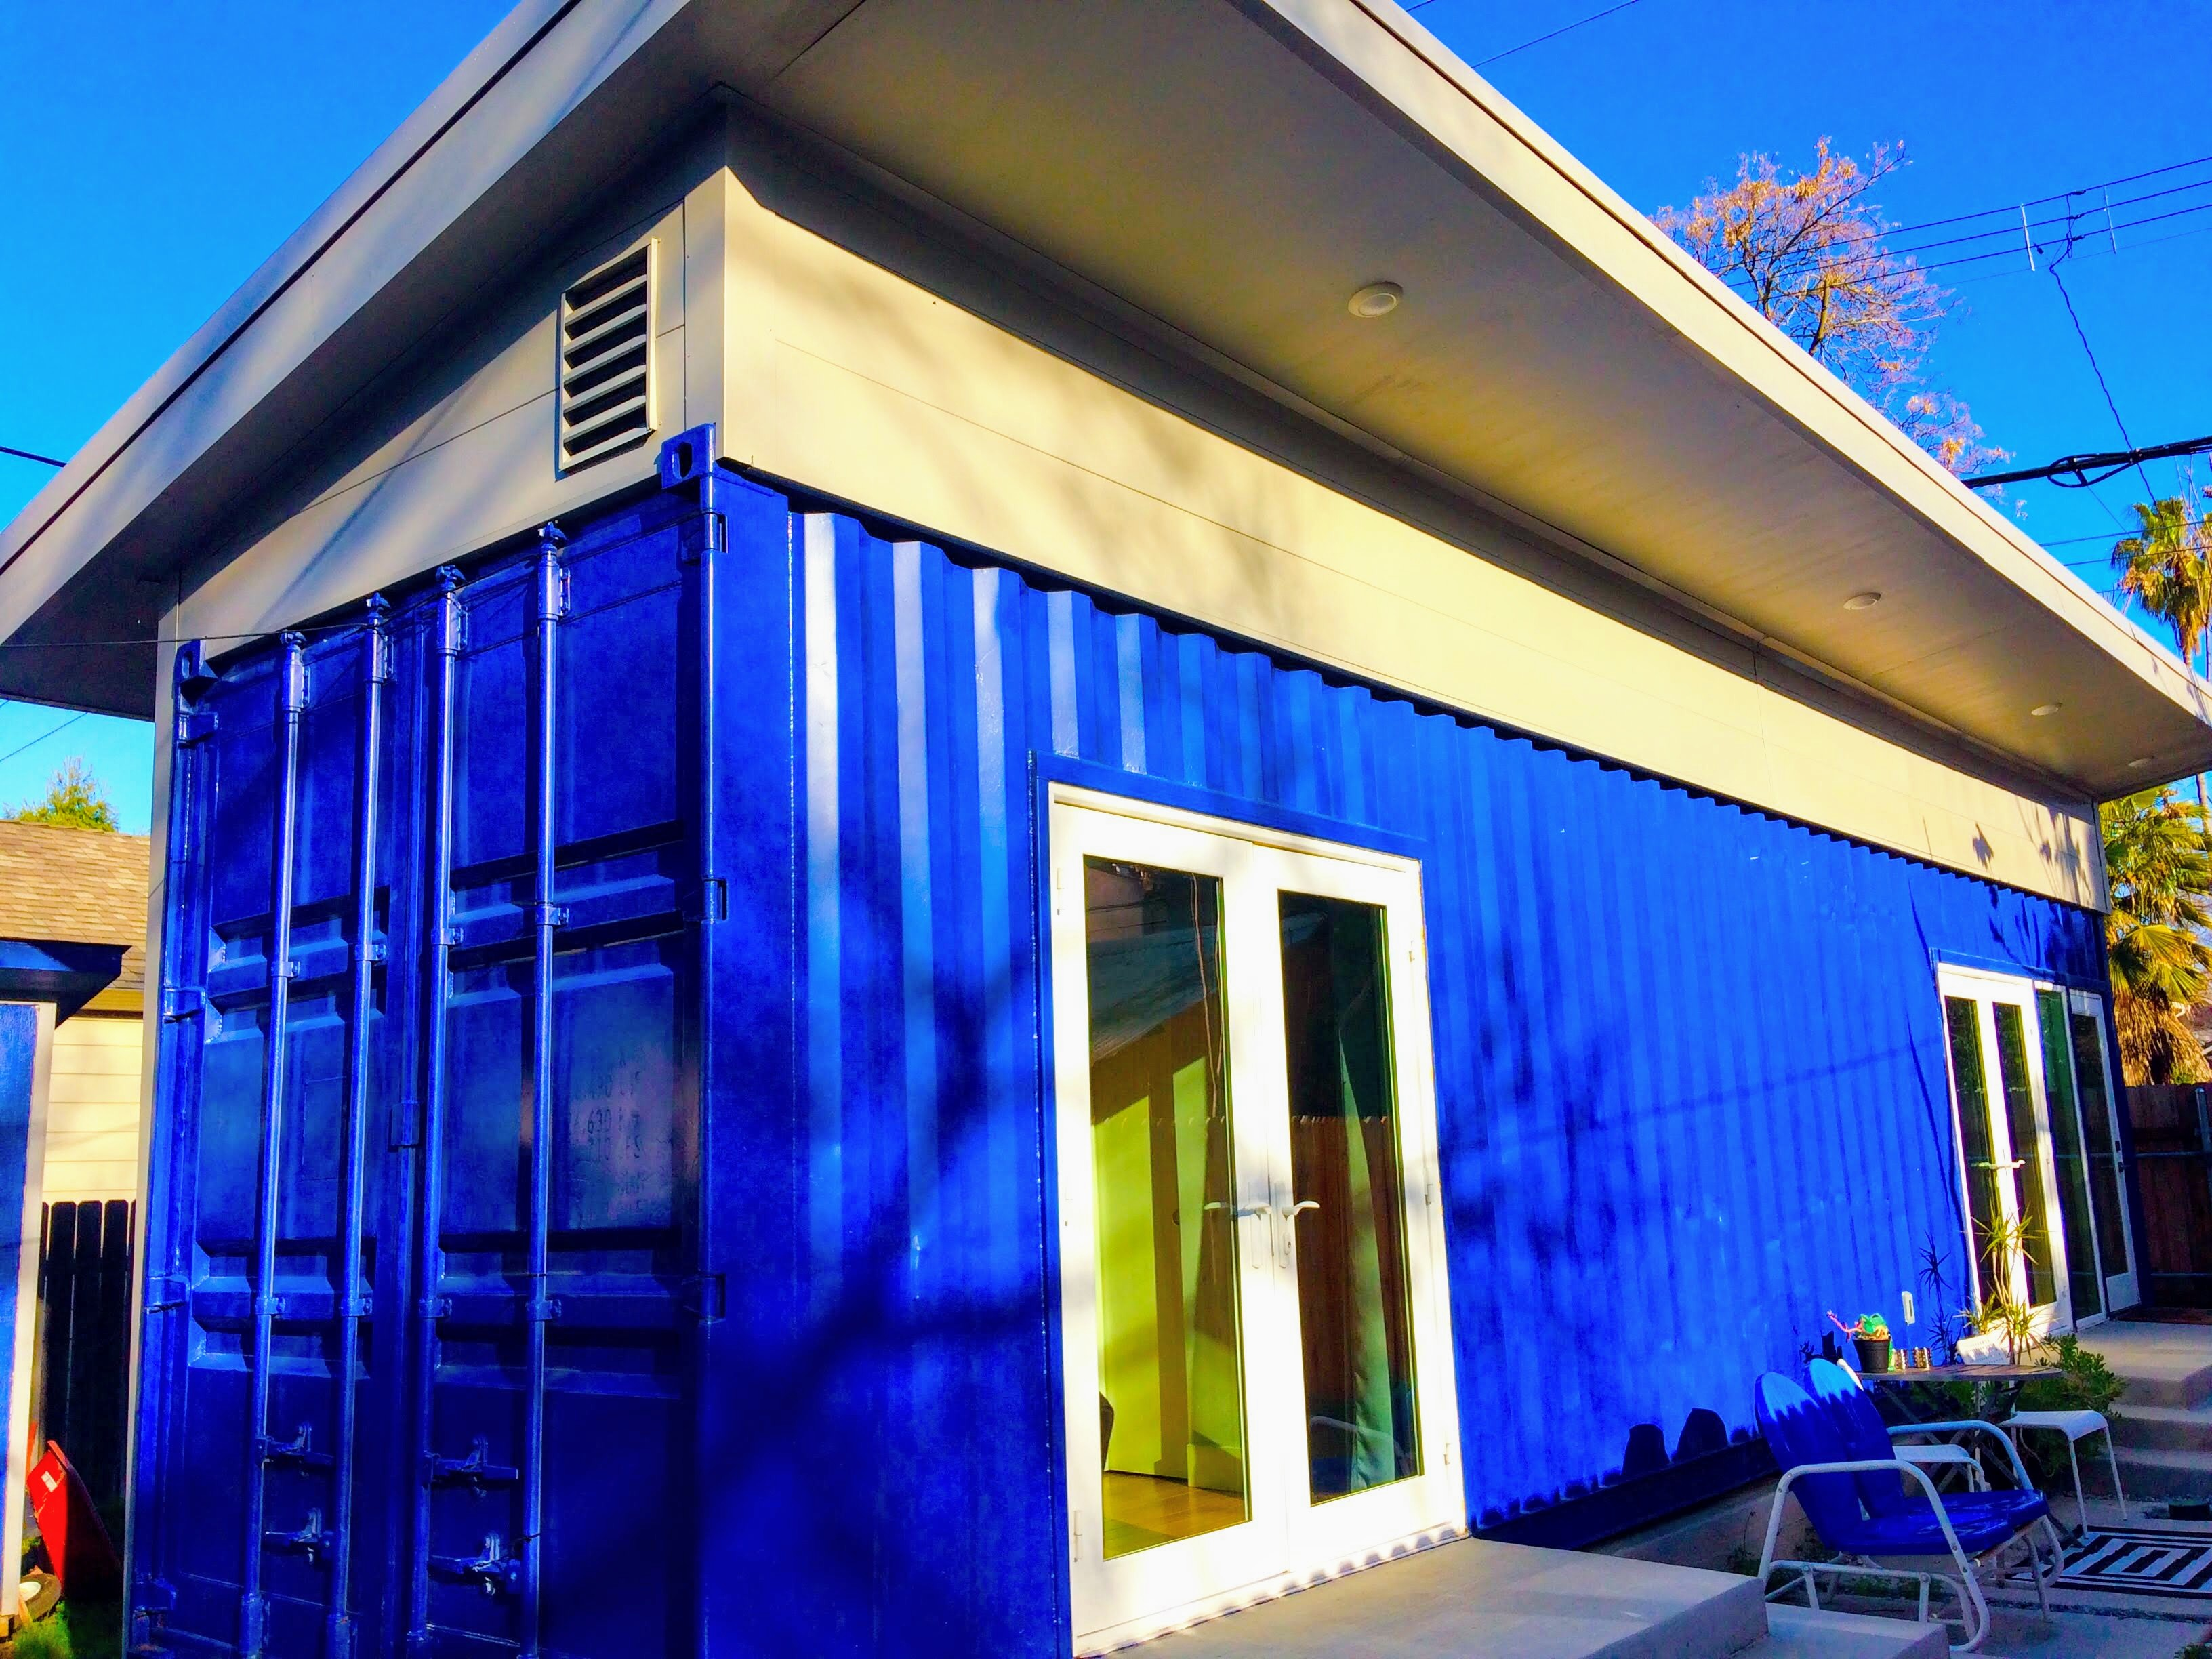 tiny travel chick indoor things to do in sacramento shipping container home